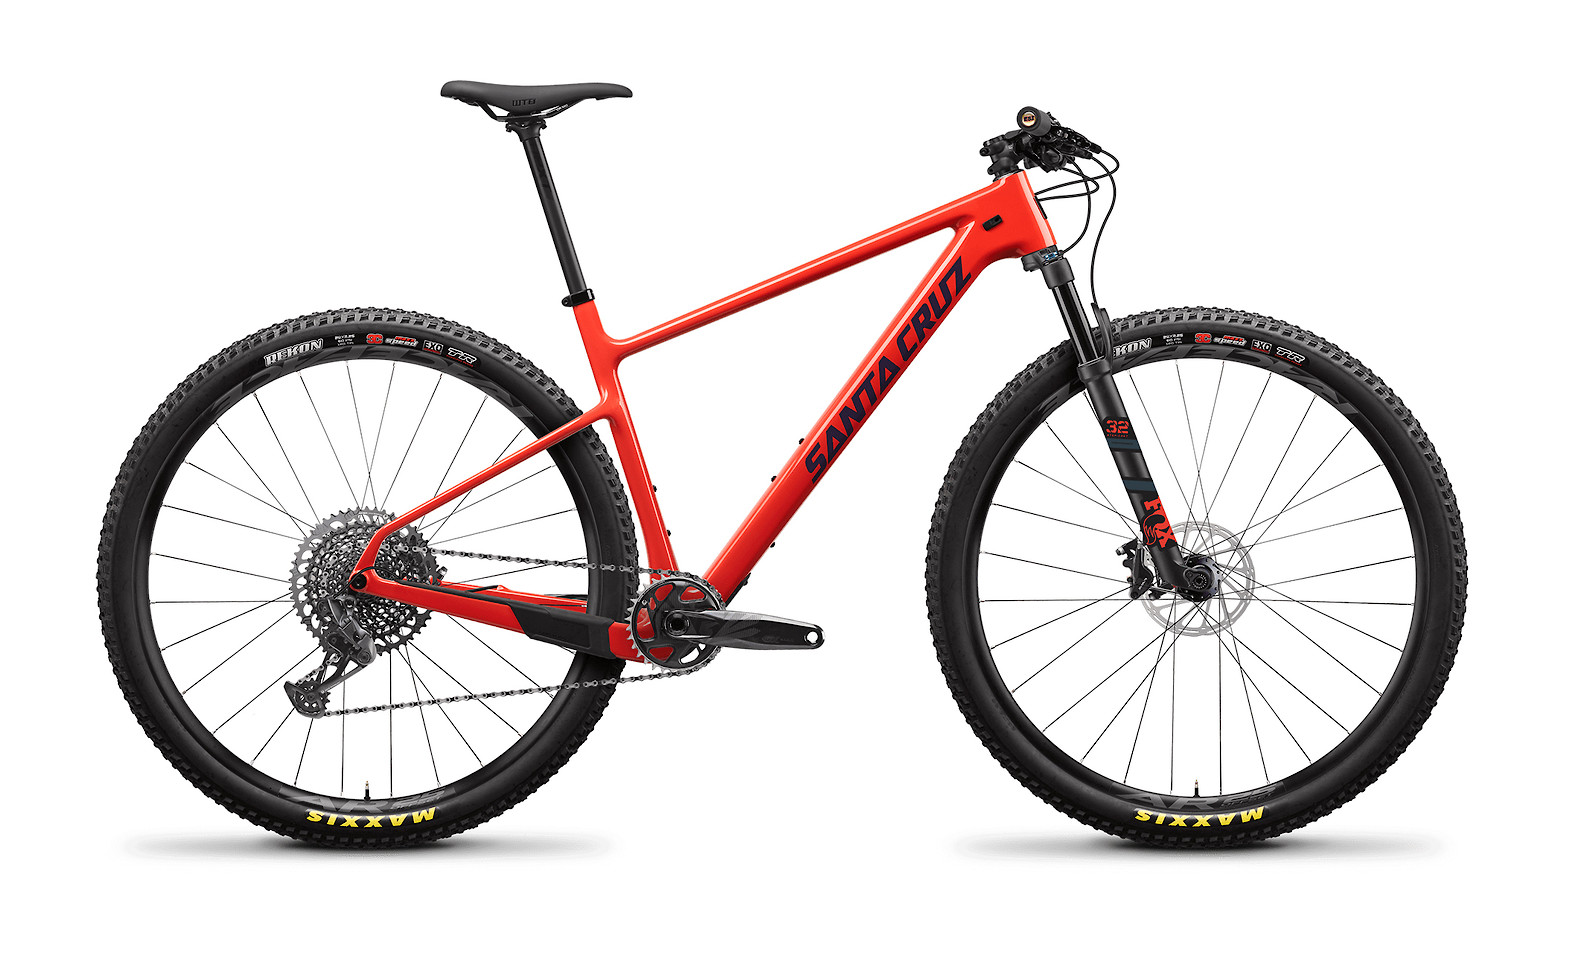 2021 Santa Cruz Highball X01 Carbon CC